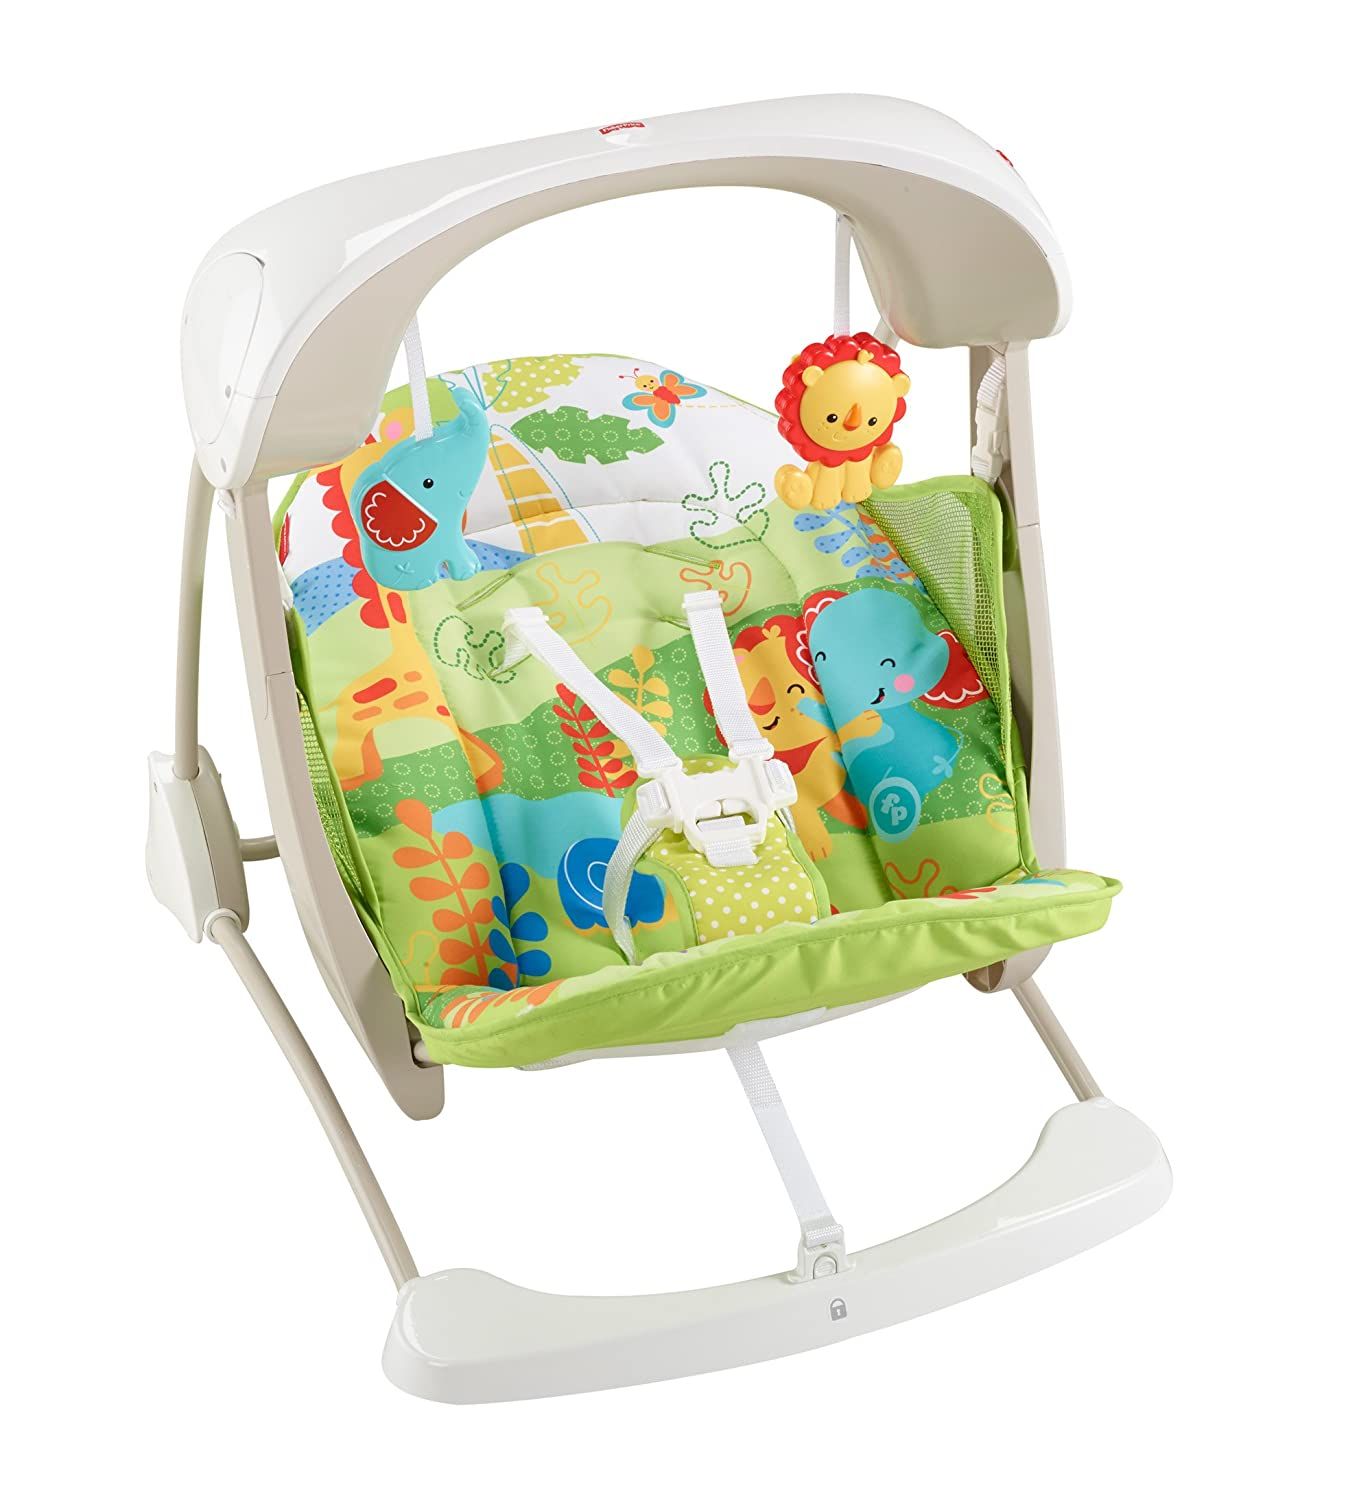 9 Best Fisher-Price Baby Swings Reviews of 2021 12